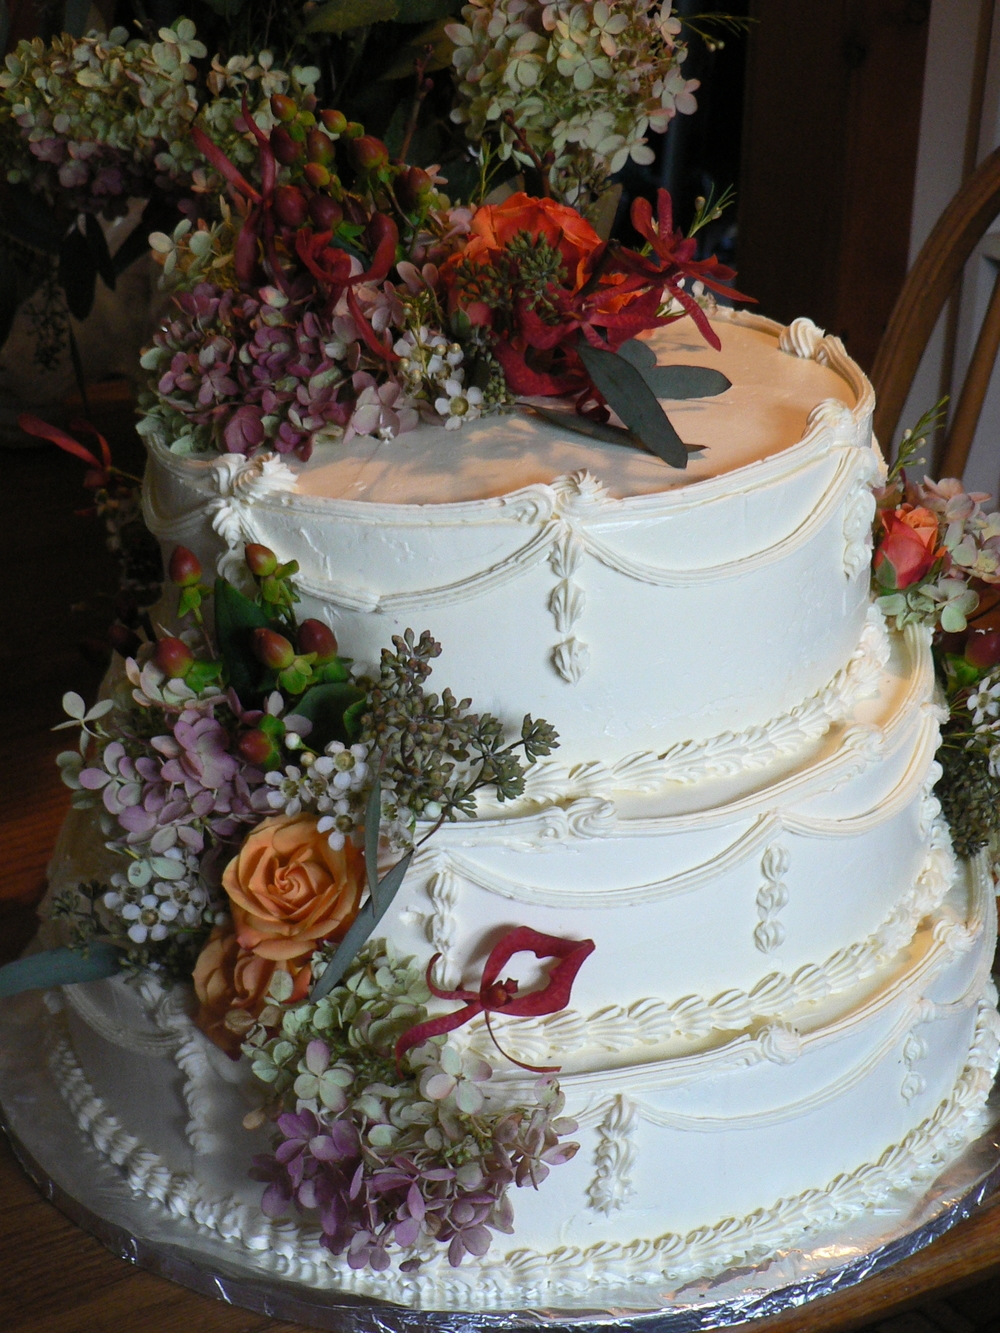 More wedding cakes-3.JPG